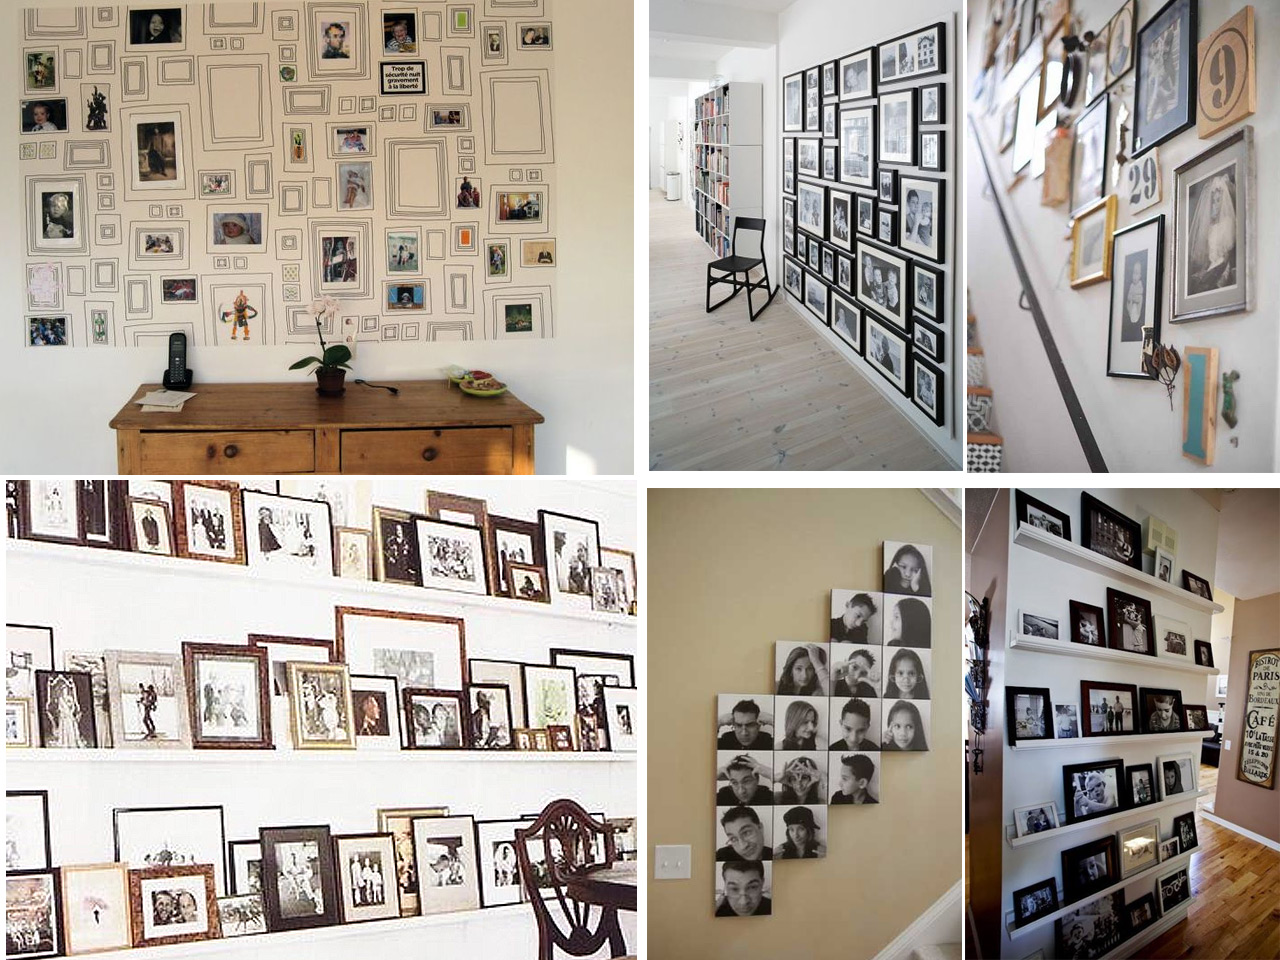 60 brillantes ideas para decorar con fotos familiares